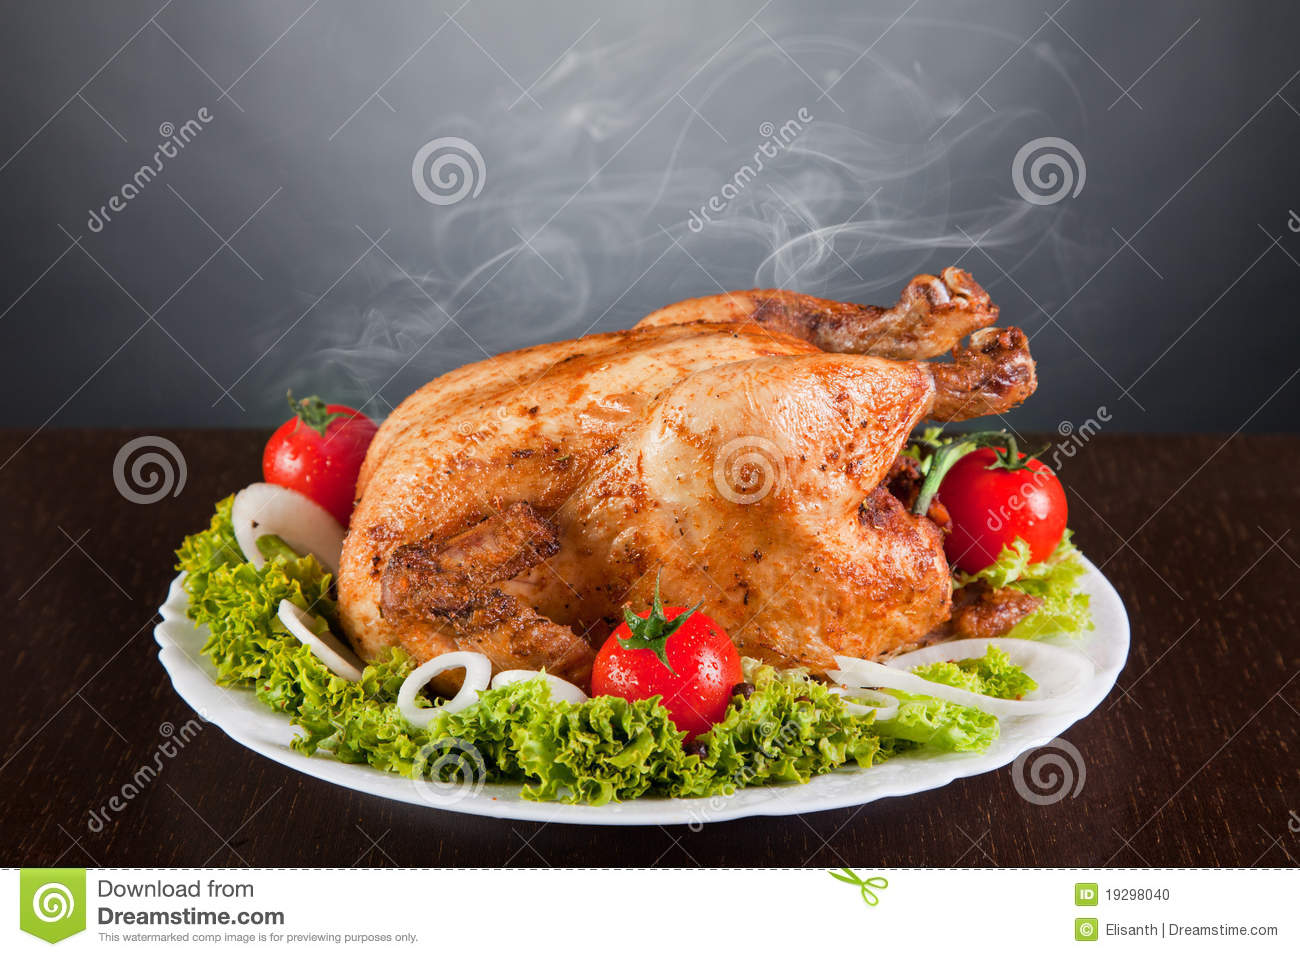 Delicious roast chicken with red tomatoes